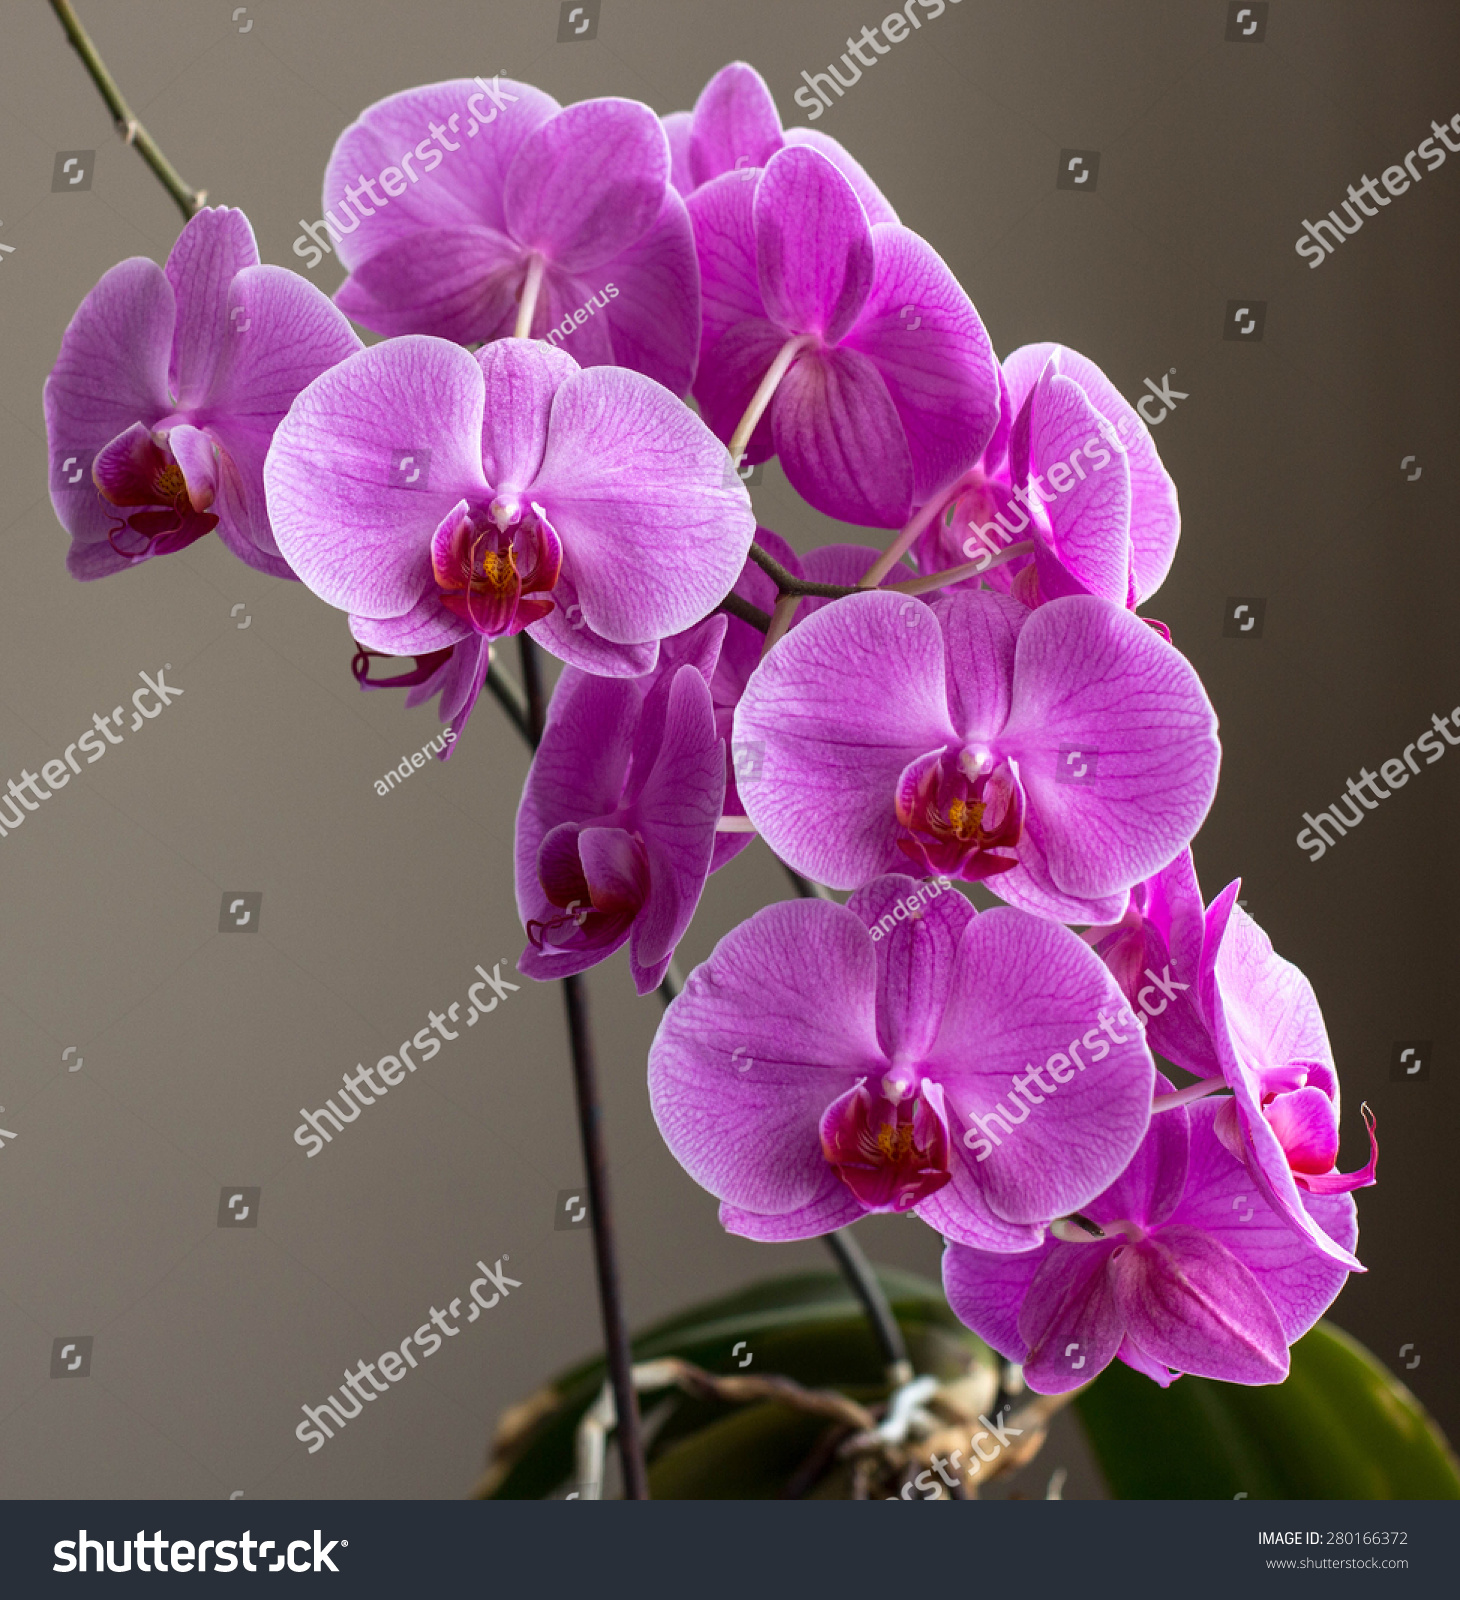 Beautiful flowers blooming orchid closeup stock photo 280166372 beautiful flowers blooming orchid closeup izmirmasajfo Images